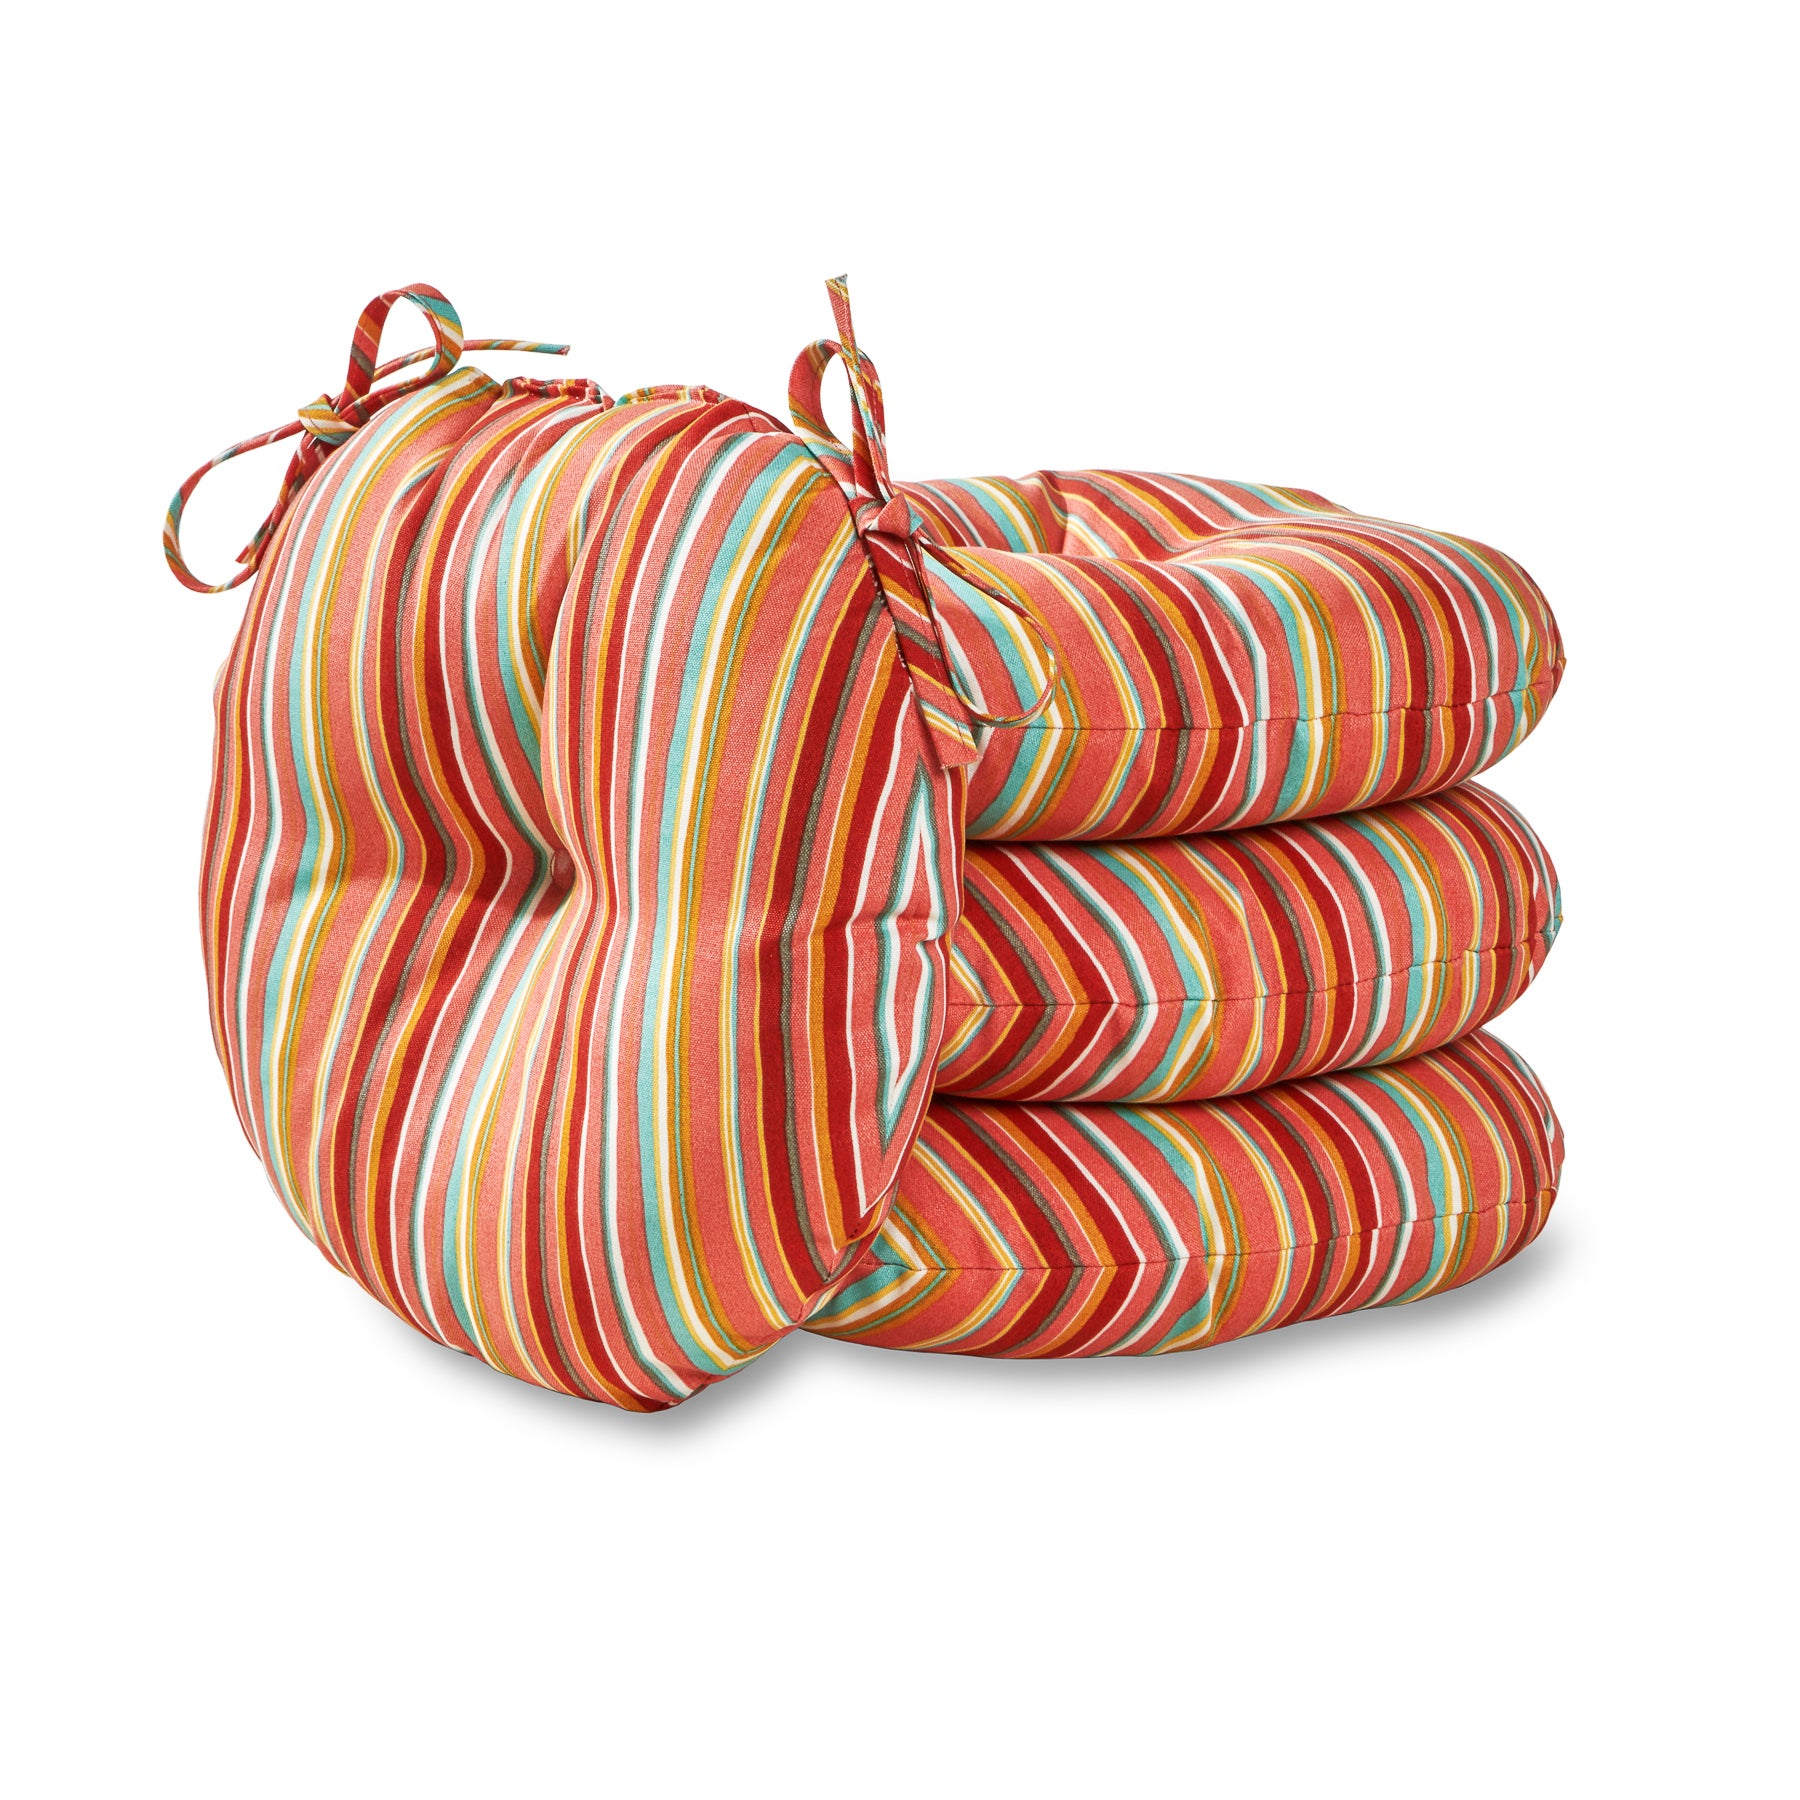 15 inch round outdoor bistro chair cushion in coastal stripe set